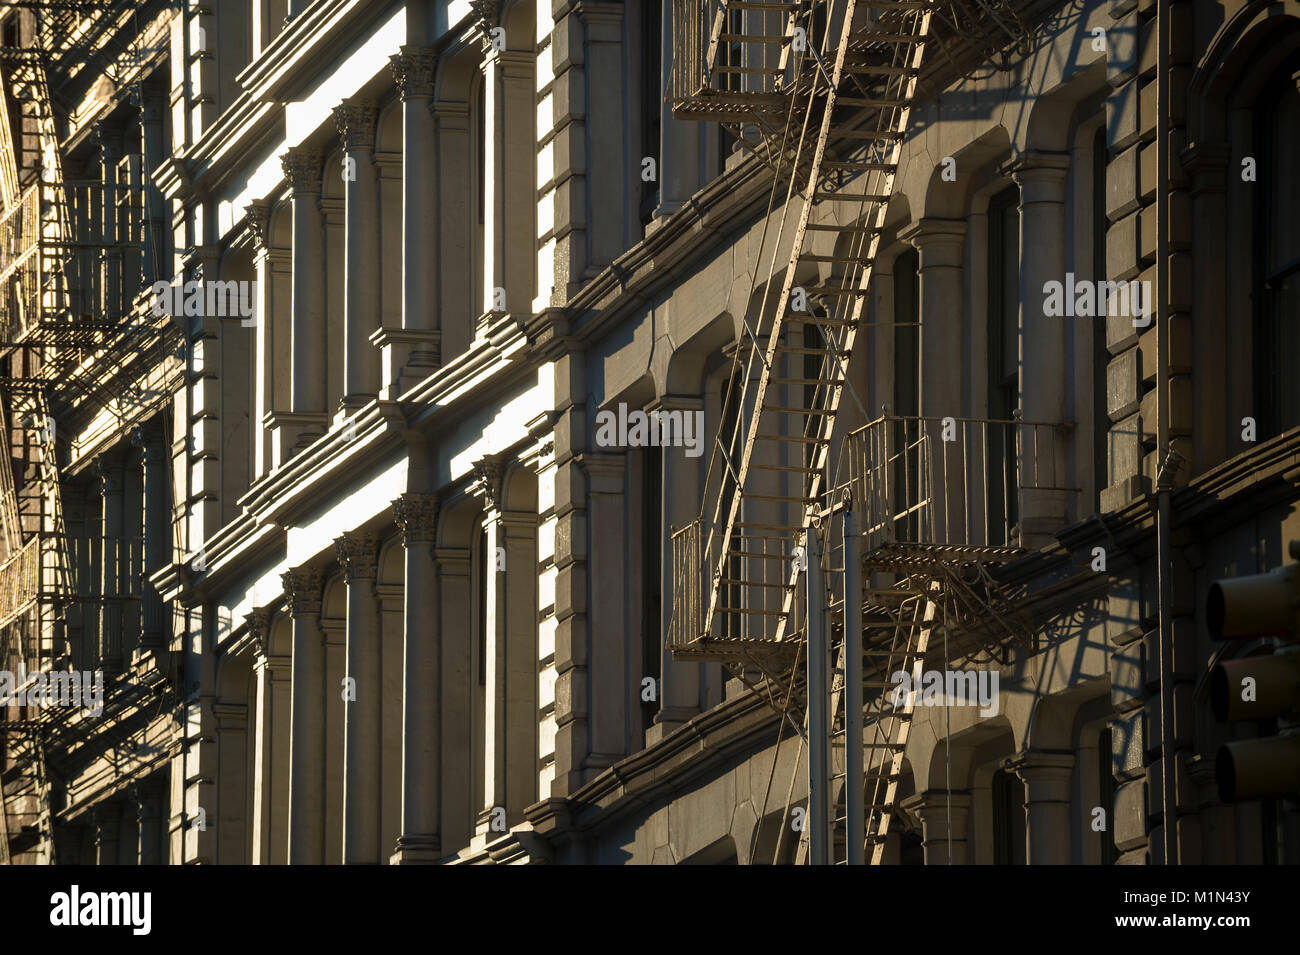 Close-up of fire escapes running down the facades of iconic cast iron buildings in Soho, New York City - Stock Image